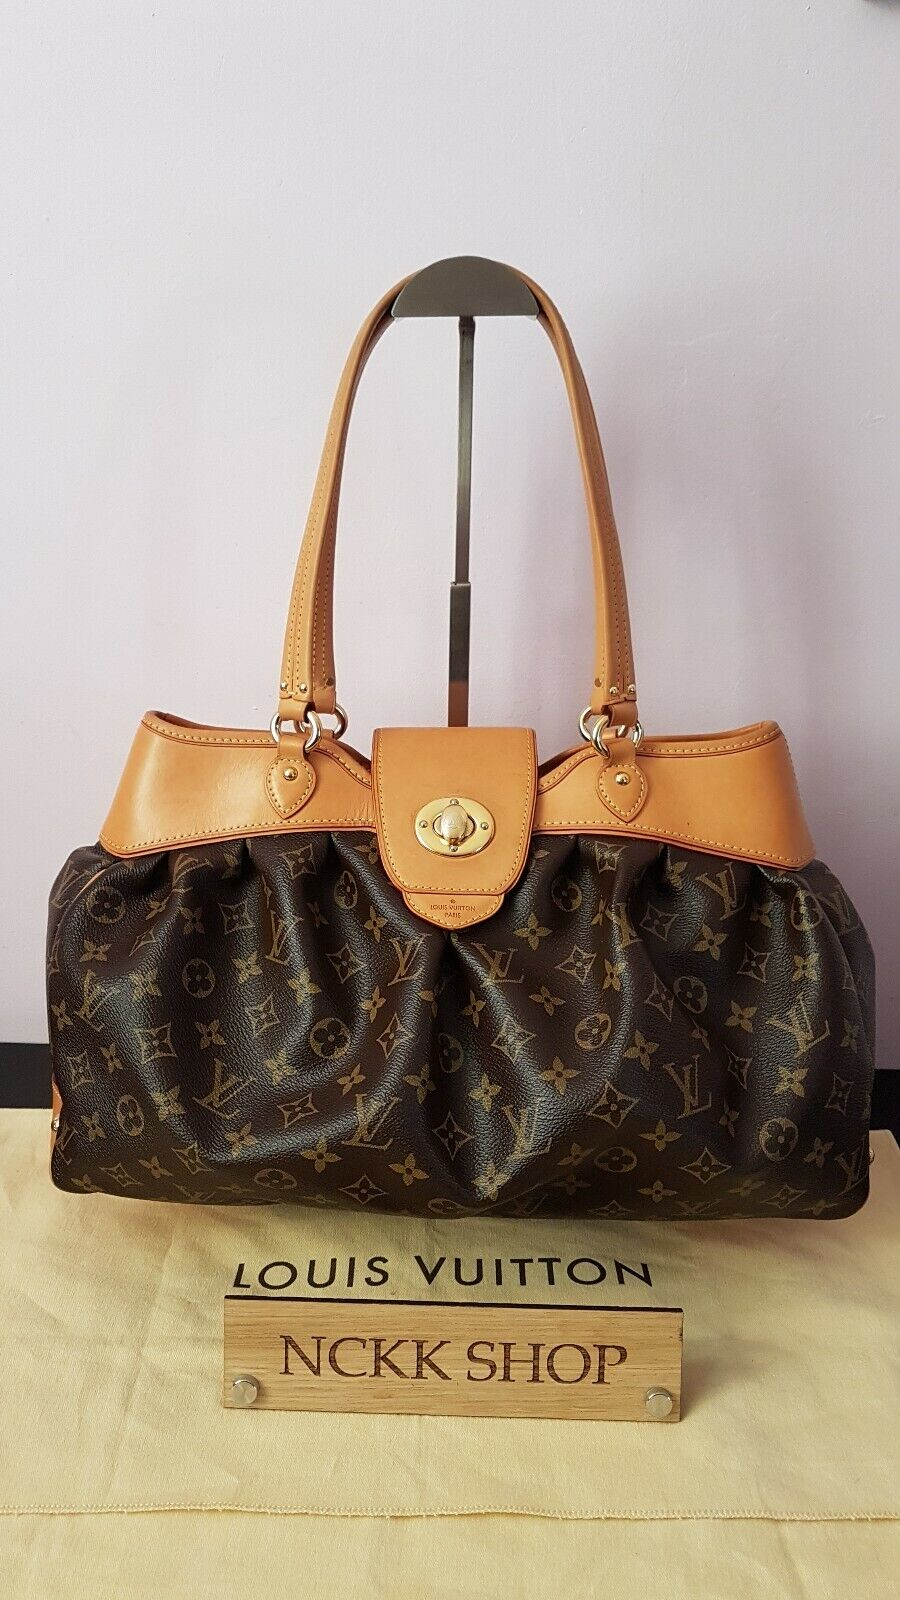 100% Authentic Louis Vuitton boesi MM Monogram Canvas Umhängetasche m45714 - 979.11,Kaufpreis 979,11,datum 01.07.2020 22:12:38,Website ebay.de